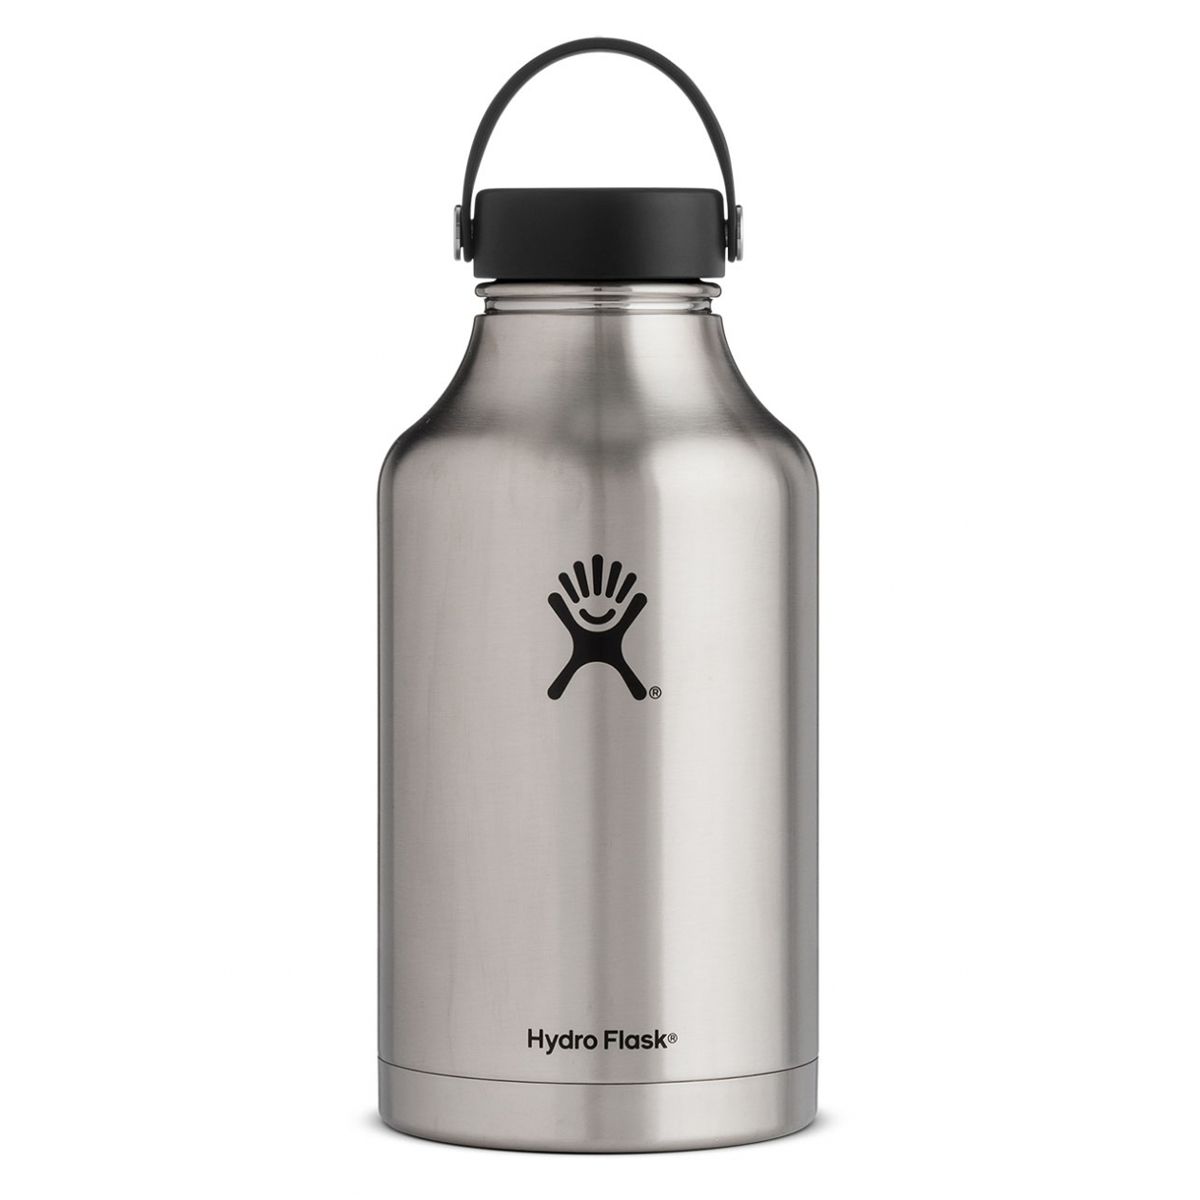 Hydro Flask 64oz Wide Mouth Insulated Water Bottle by HYDRO FLASK